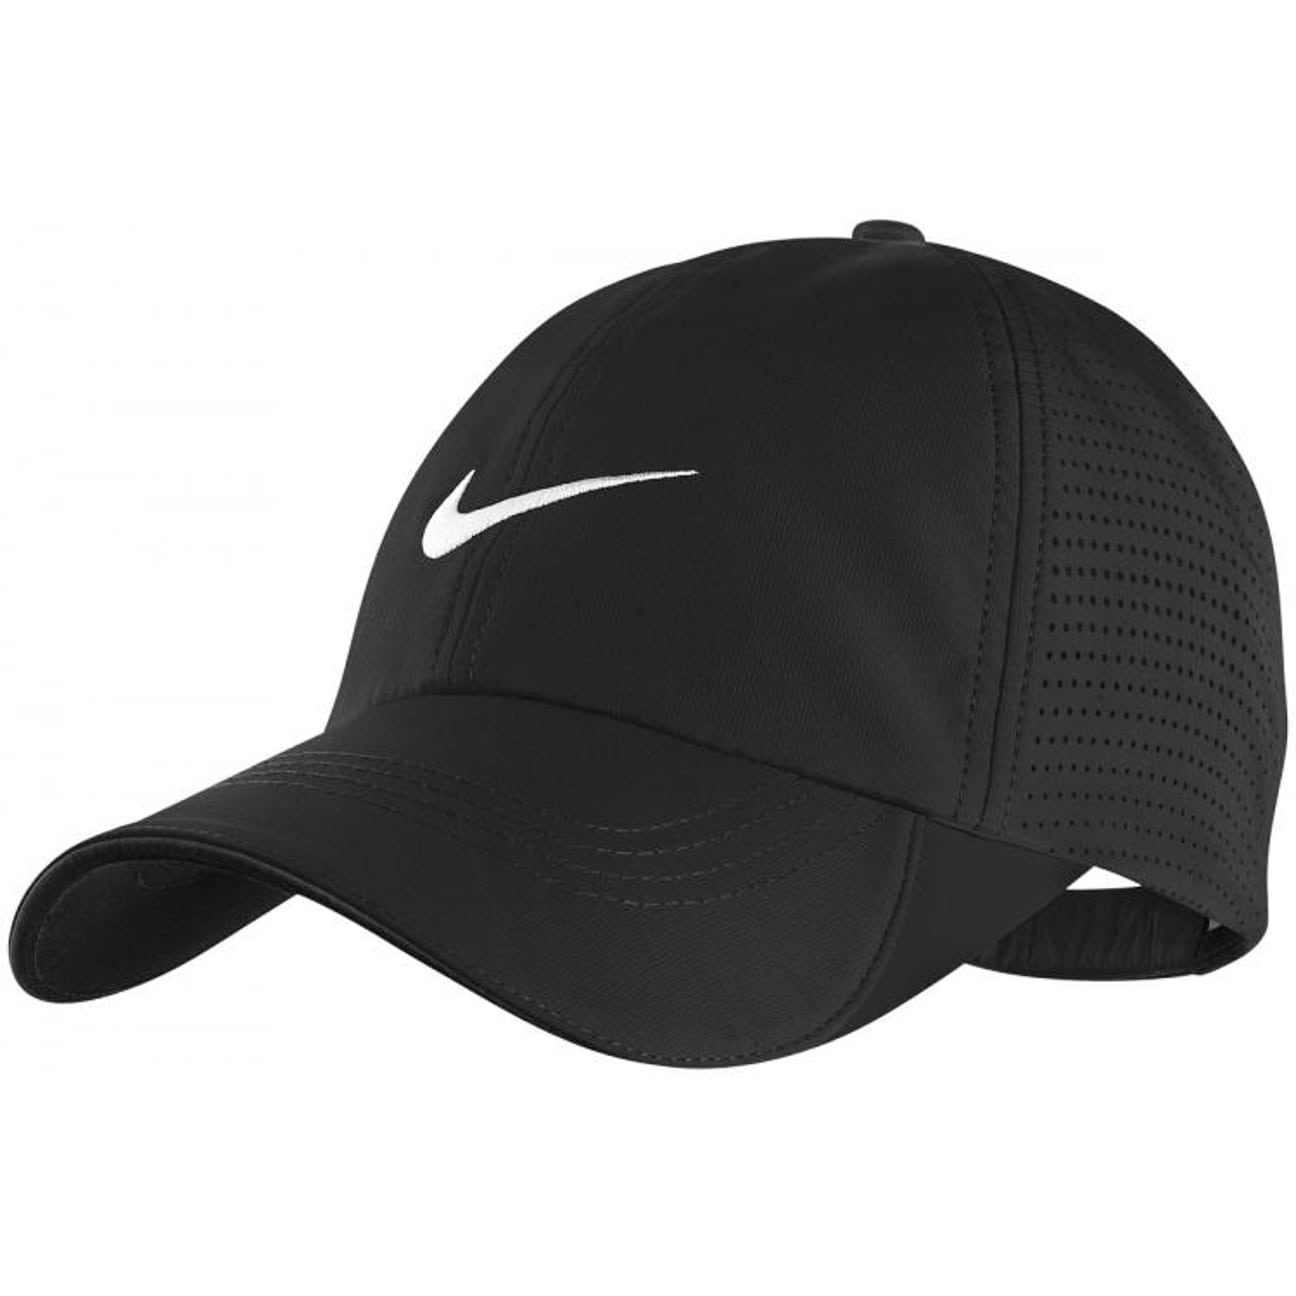 casquette nike pour femme. Black Bedroom Furniture Sets. Home Design Ideas